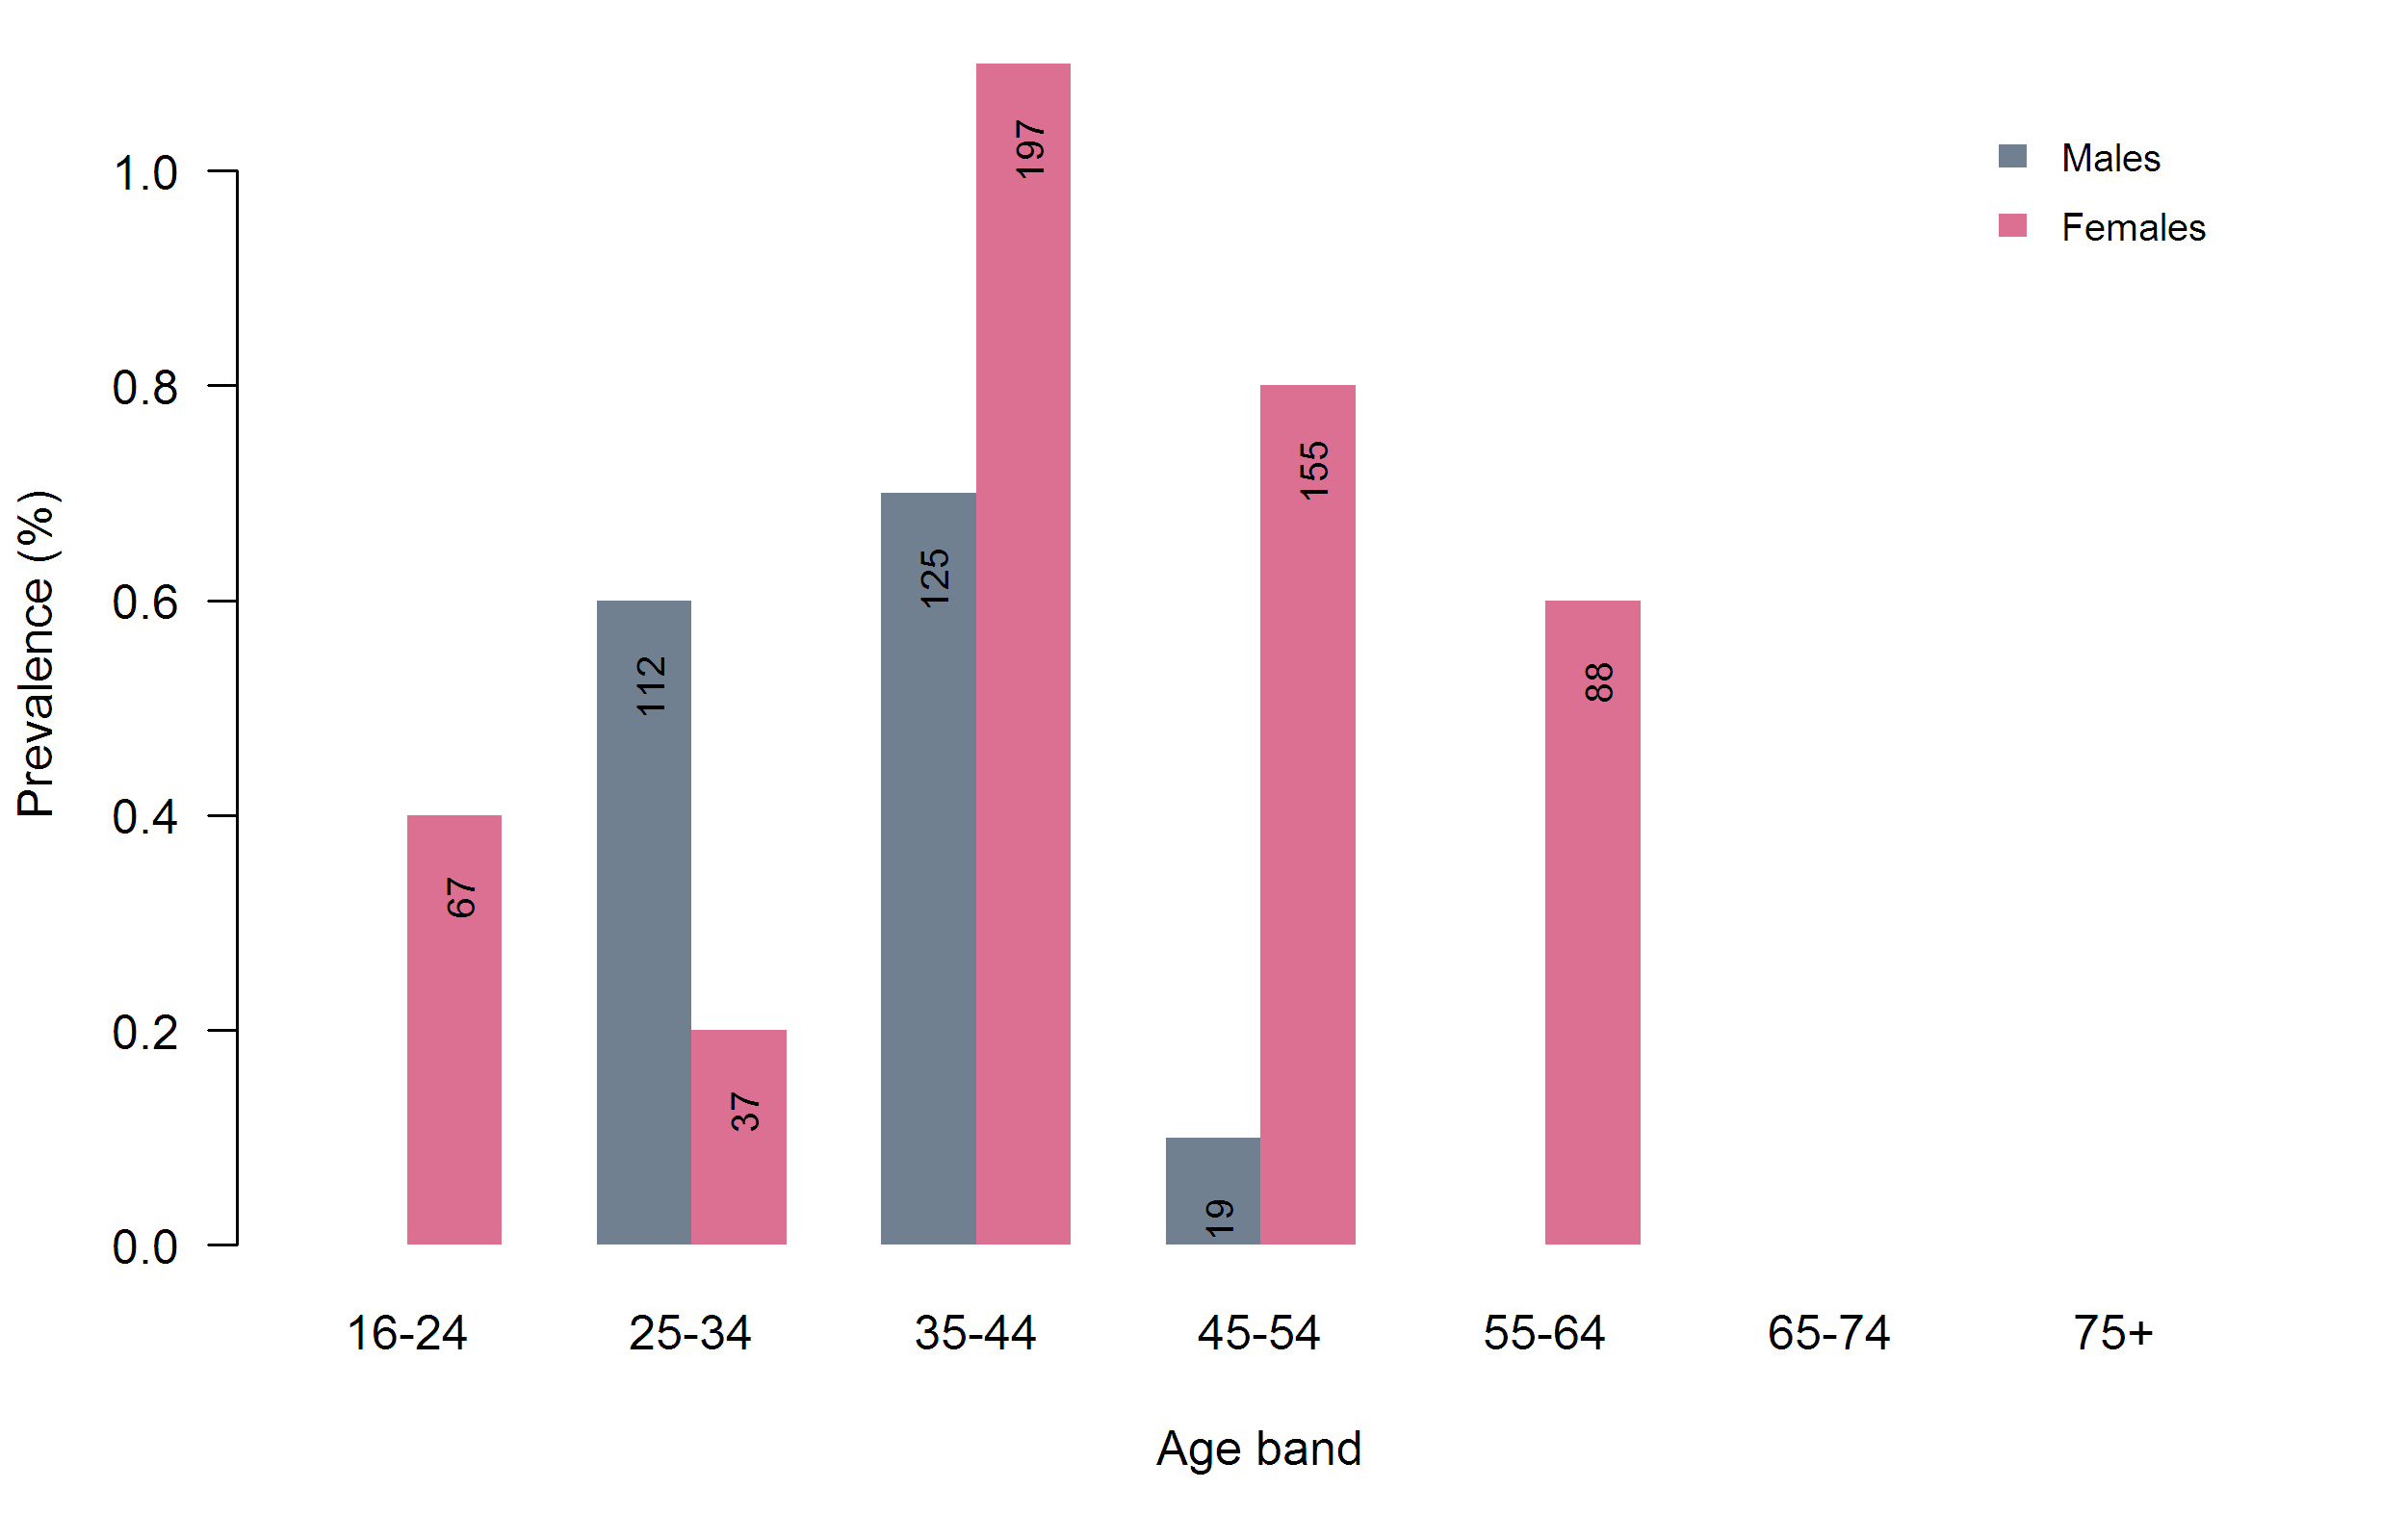 Figure 10: National prevalence of psychotic disorder in past year by age and gender.